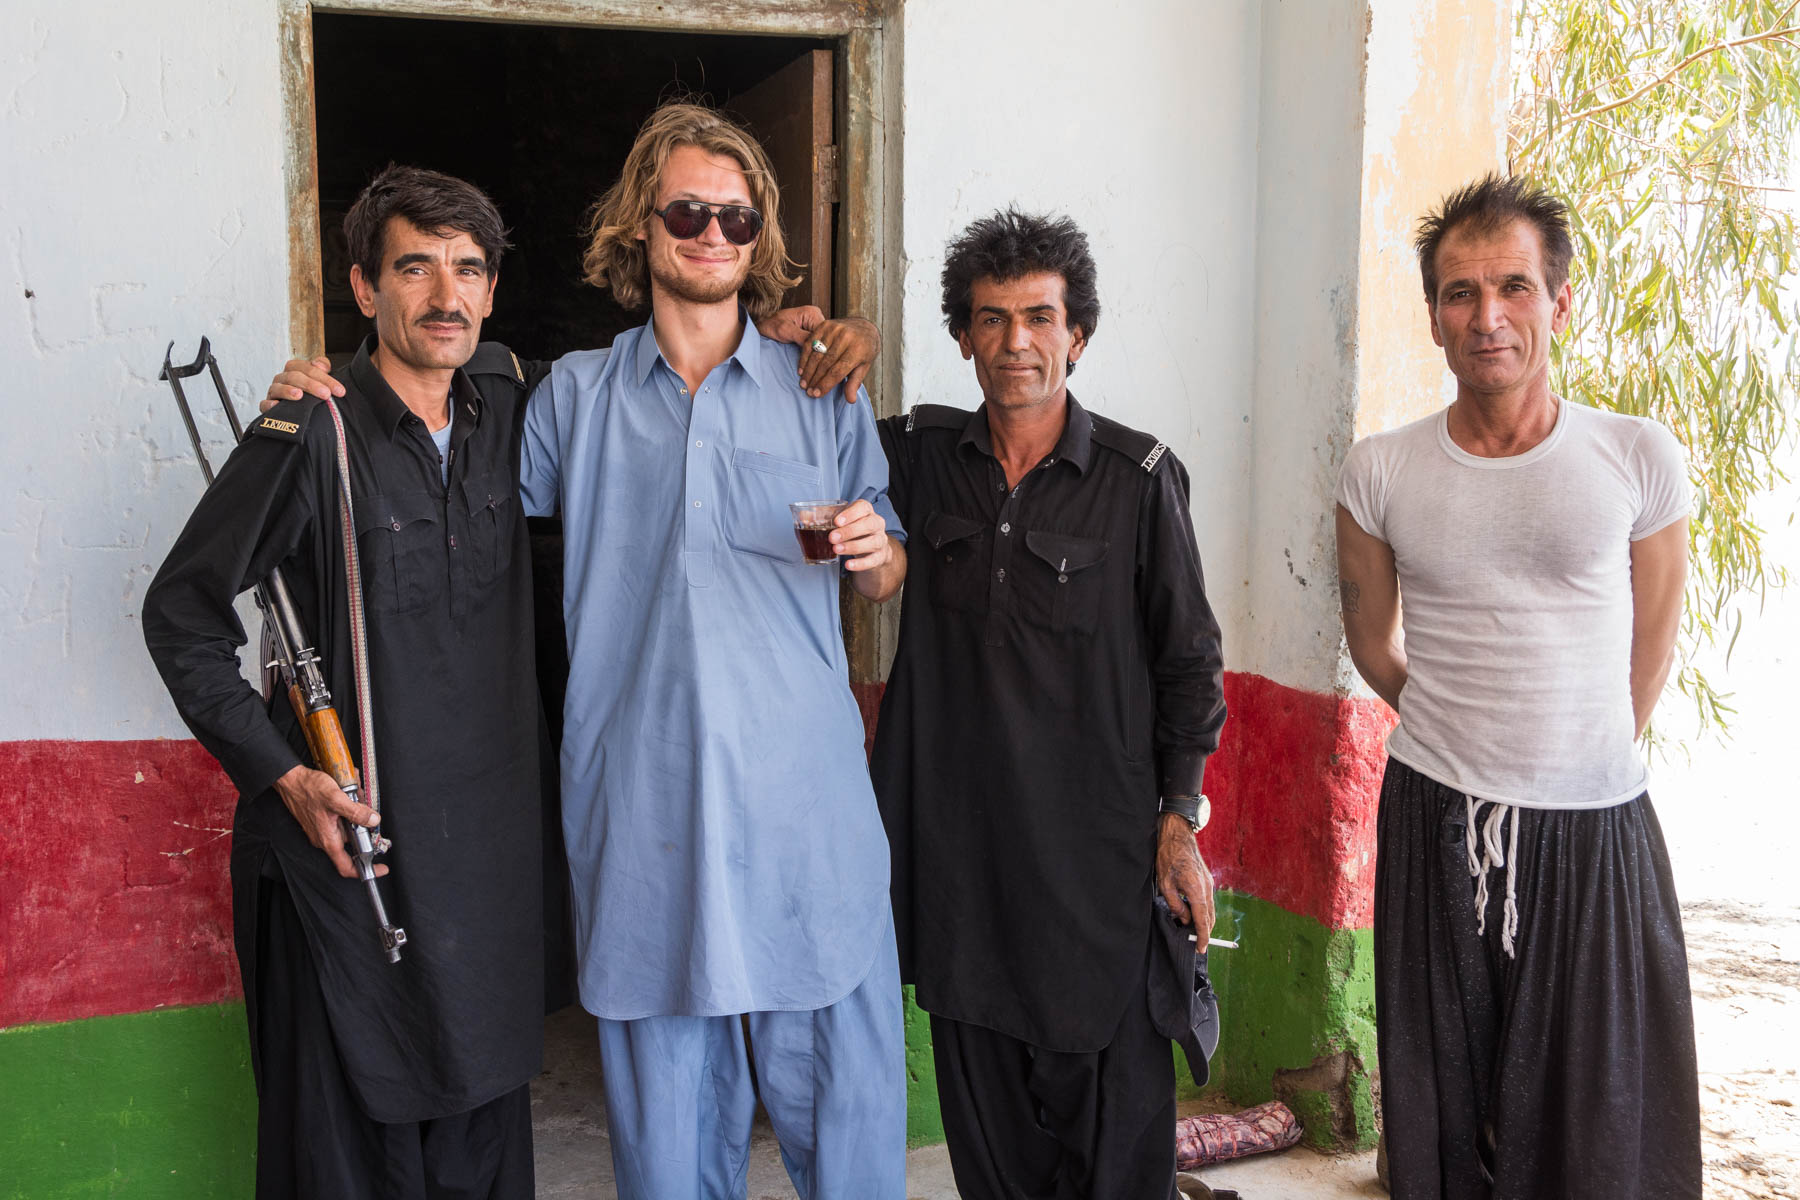 Sebastiaan of Lost With Purpose looking like a boss with Pakistani Levies